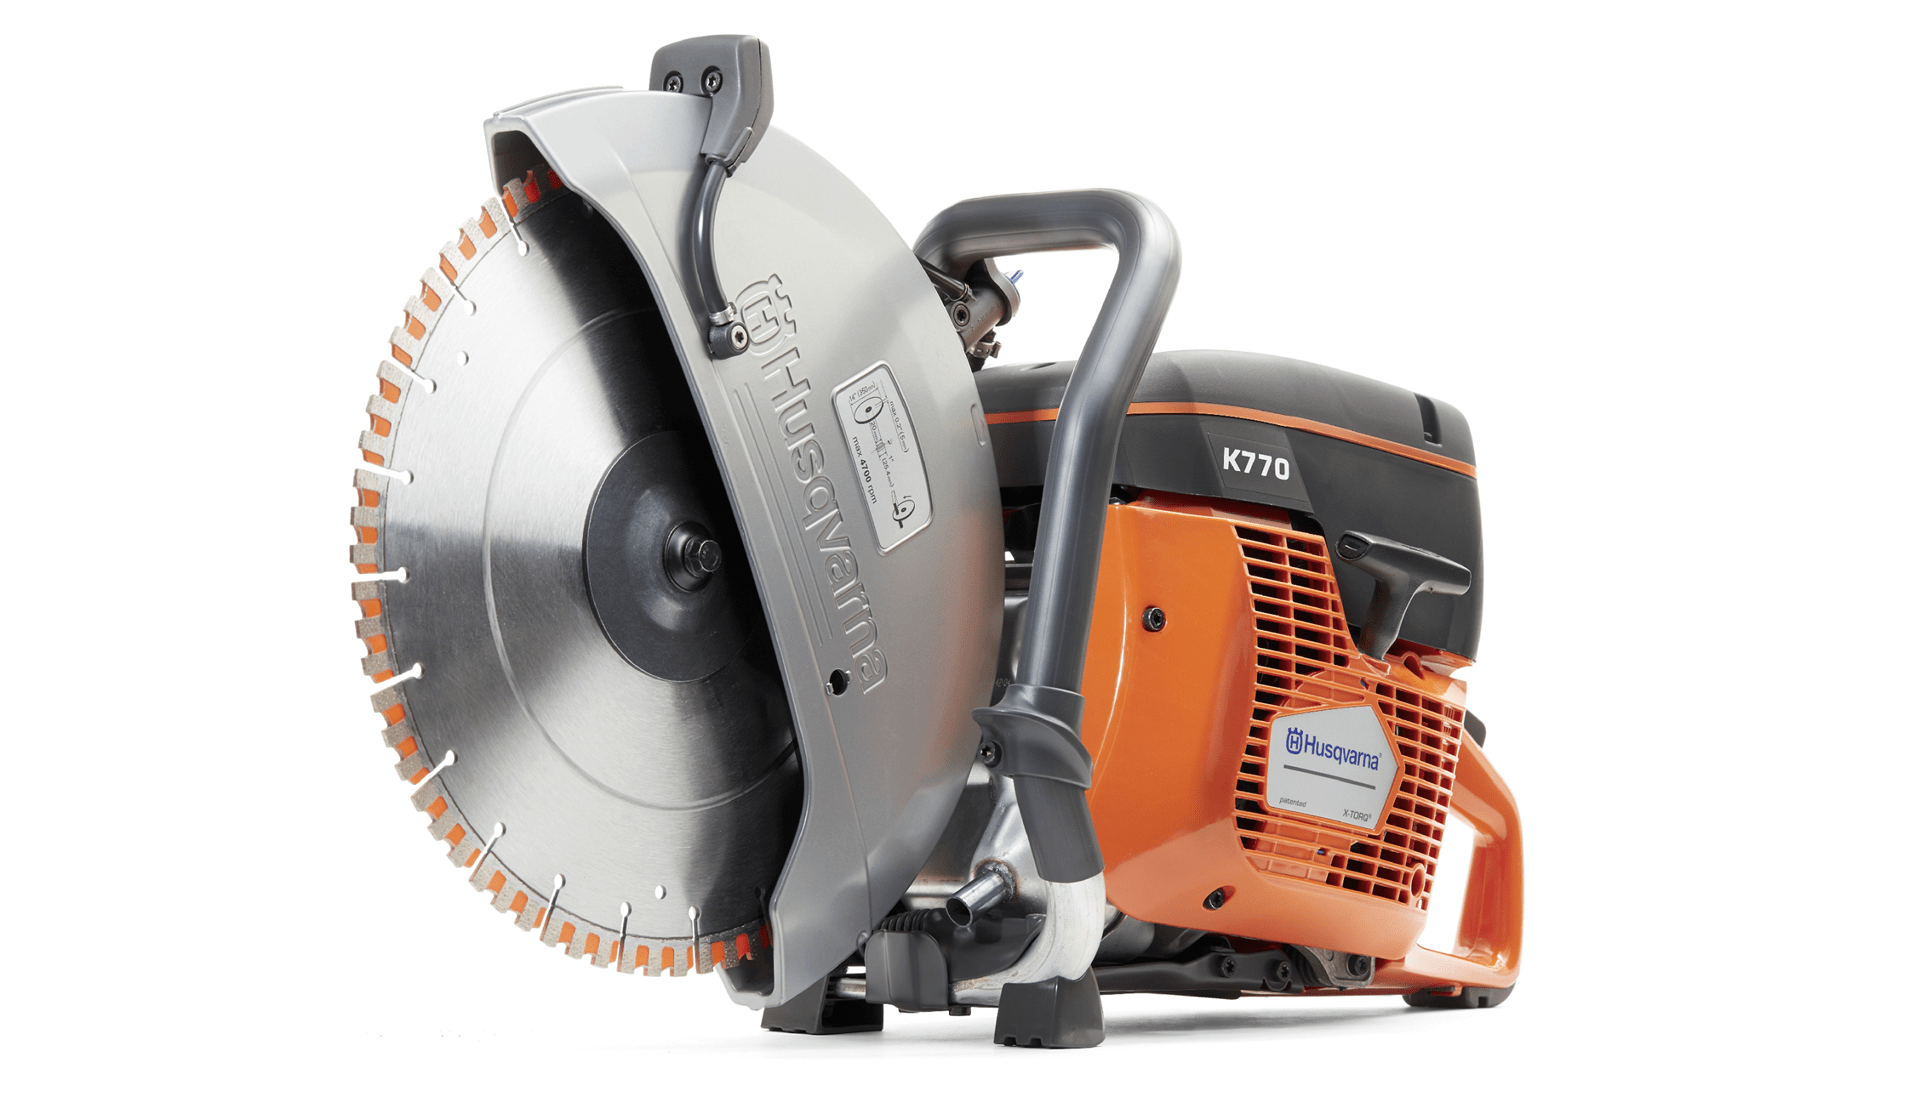 Handheld petrol cut-off concrete saw Husqvarna K 770 power cutter